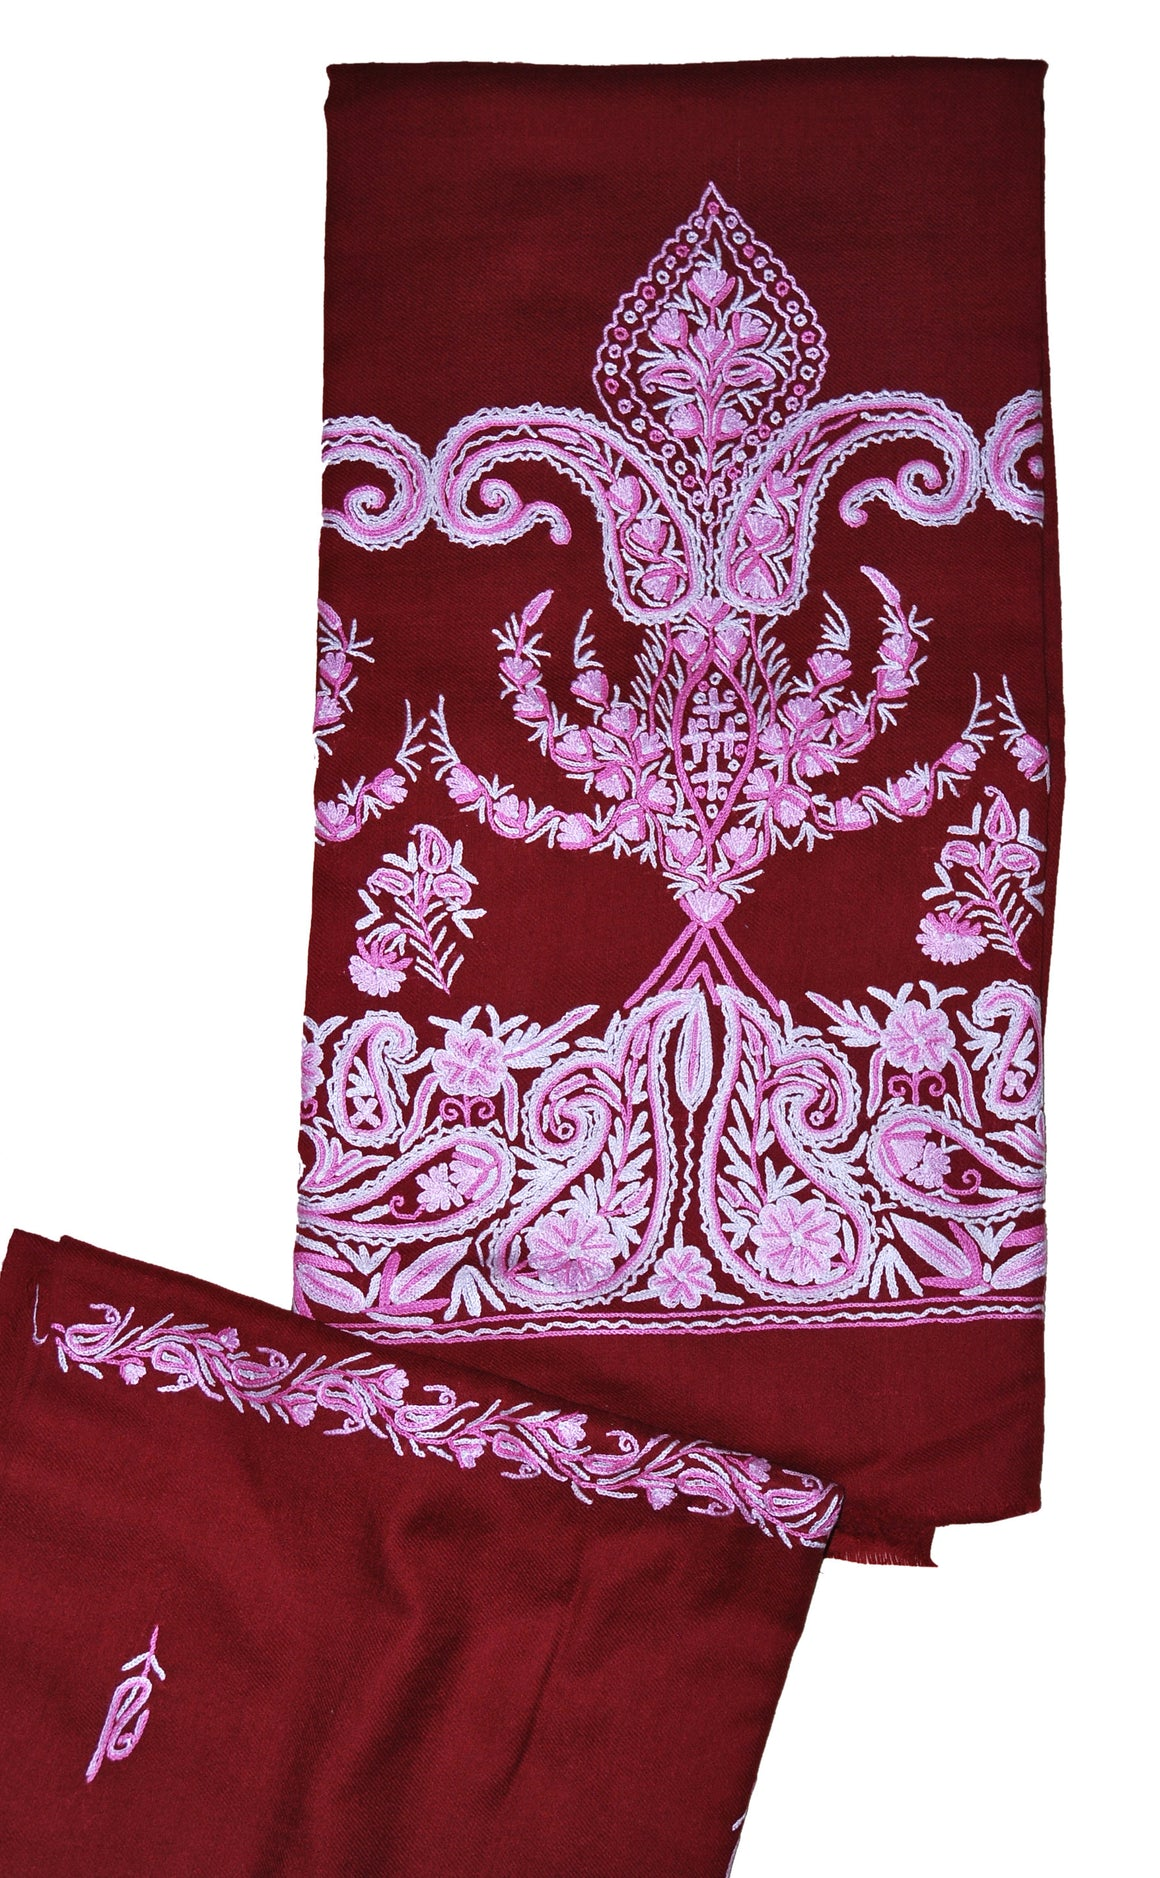 Woolen Salwar Kameez Maroon with Stole, Pink and White Embroidery #FS-435